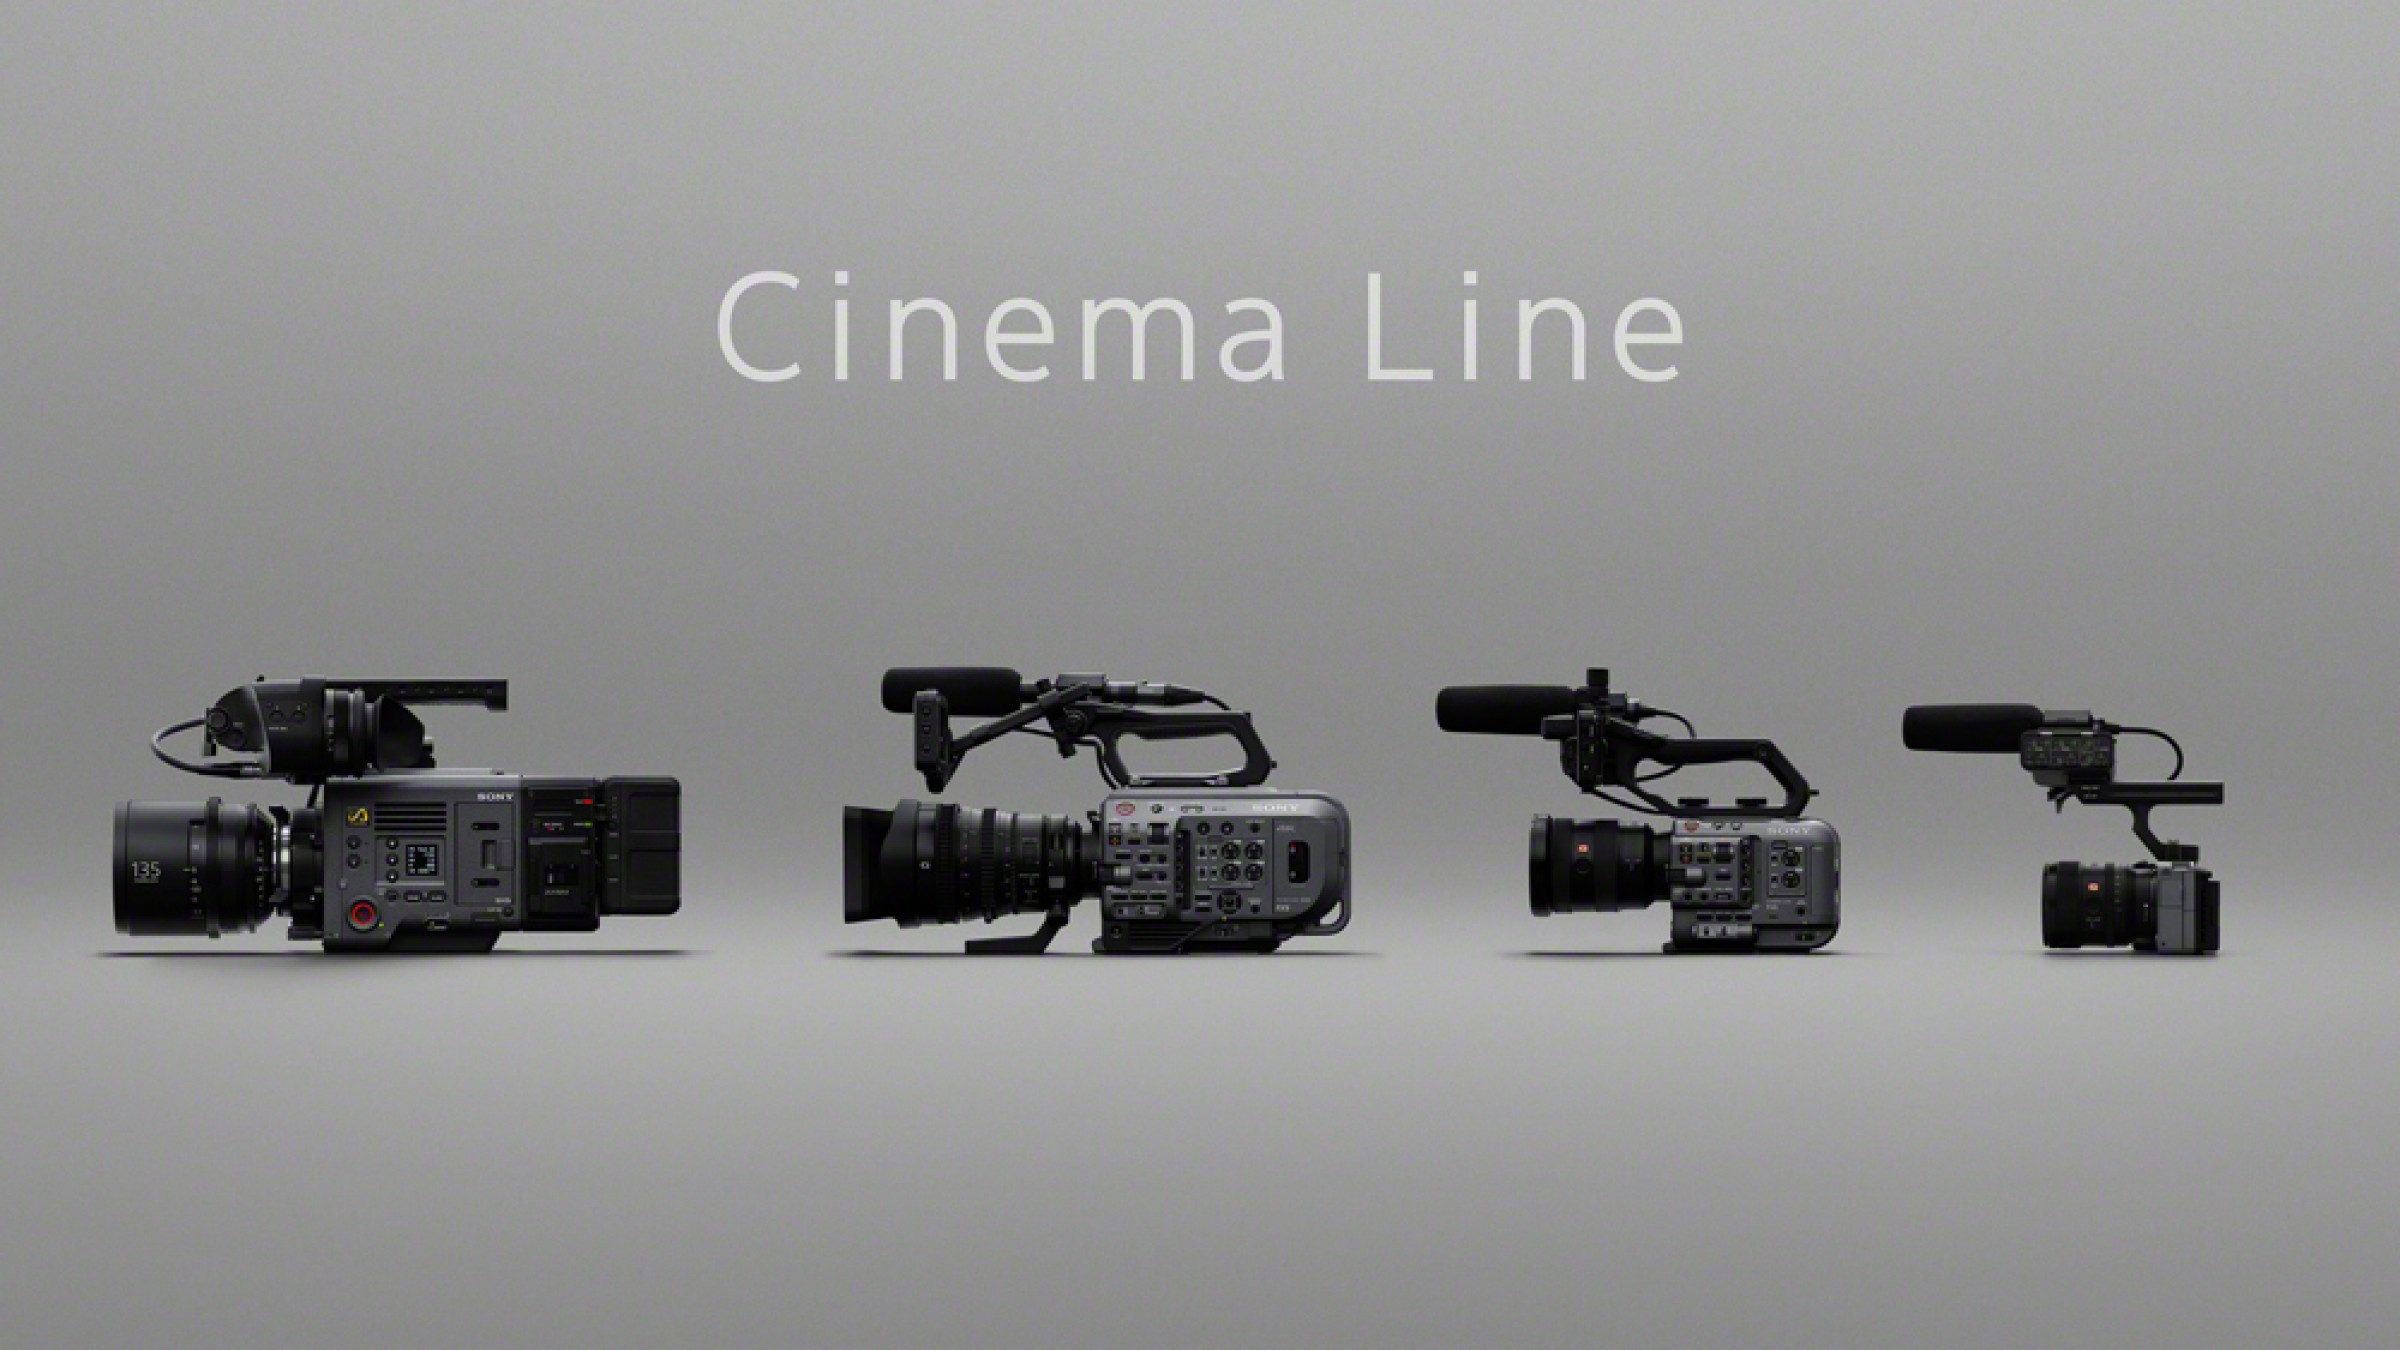 Want to Know More About the Sony Cinema Line?